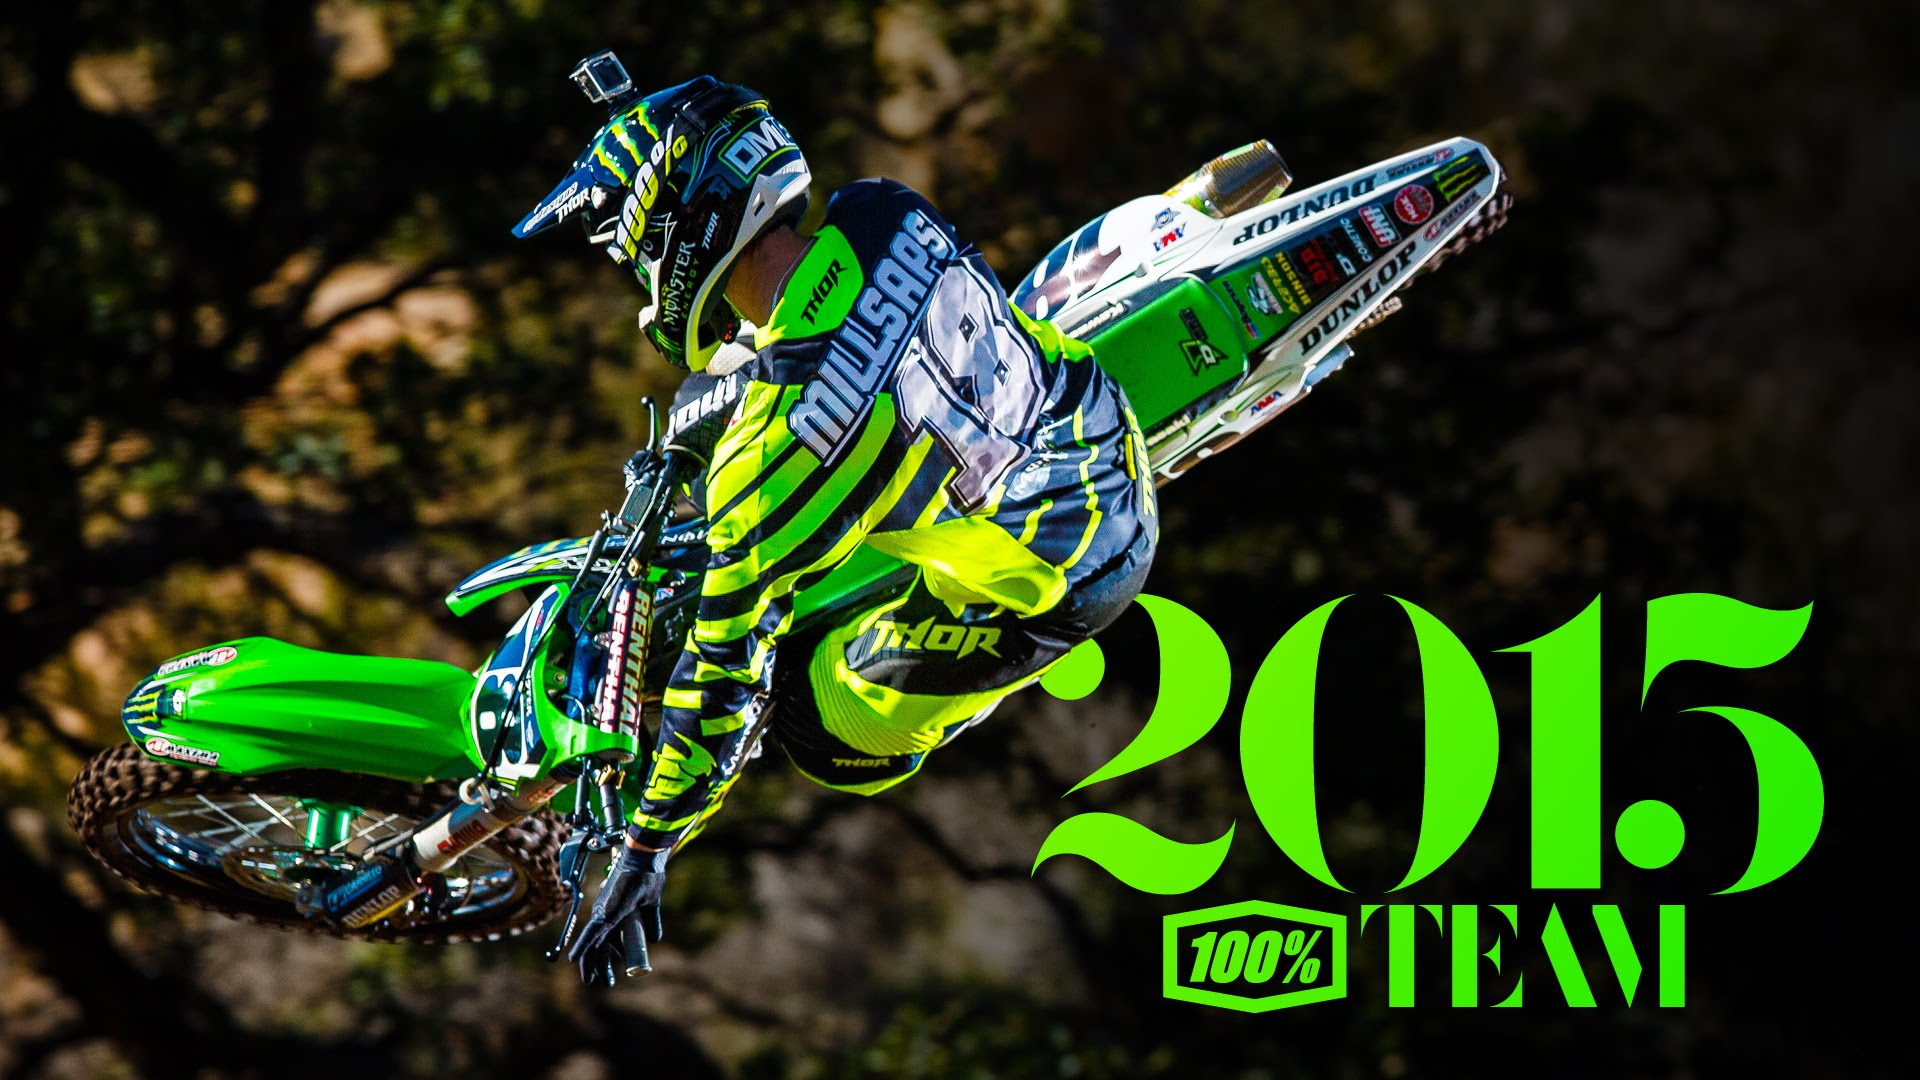 100 team intro 2015 supercross season saturday january 3 2015 1920x1080